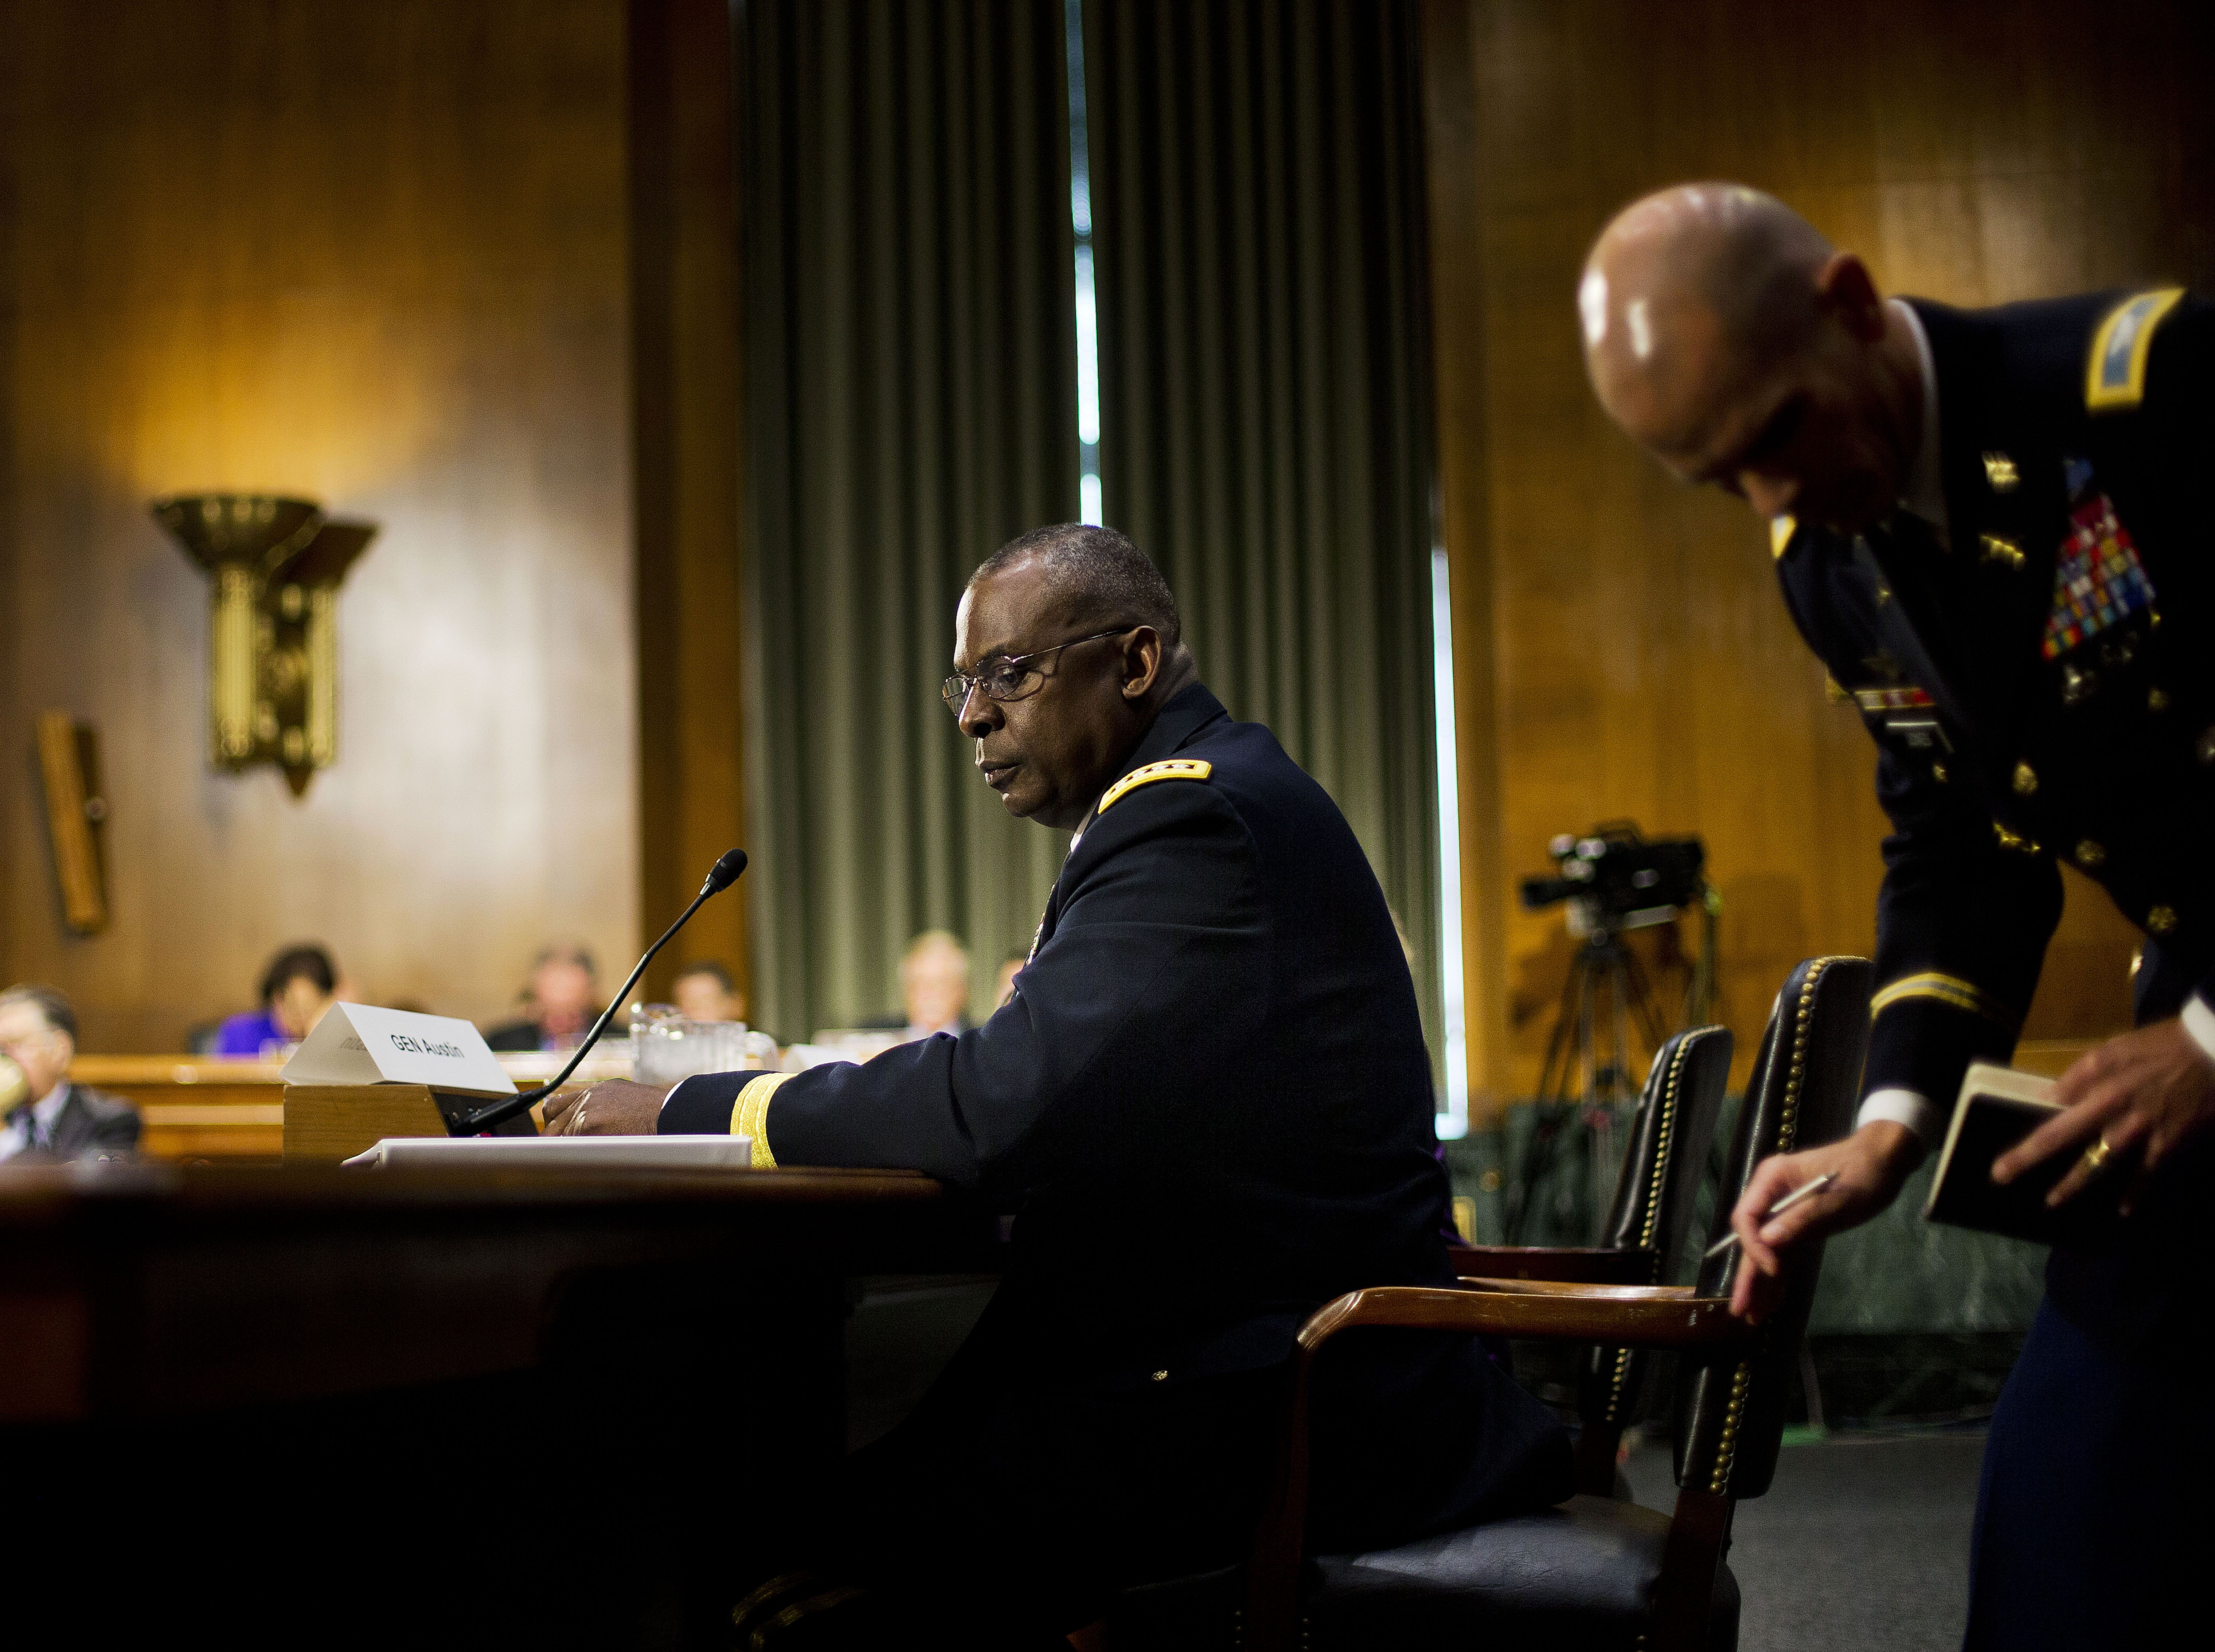 """US Central Command Commander Gen. Lloyd Austin III, center seated, looks back to his military aide while testifying on Capitol Hill in Washington, Wednesday, Sept. 16, 2015, before the Senate Armed Services Committee hearing on 'US military operations to counter the Islamic State in Iraq'. Austin vowed to take """"appropriate action"""" if an investigation indicates that senior defense officials altered intelligence reports on the Islamic State and other militant groups in Syria to exaggerate progress being made against the terrorist groups. (AP Photo/Pablo Martinez Monsivais)"""